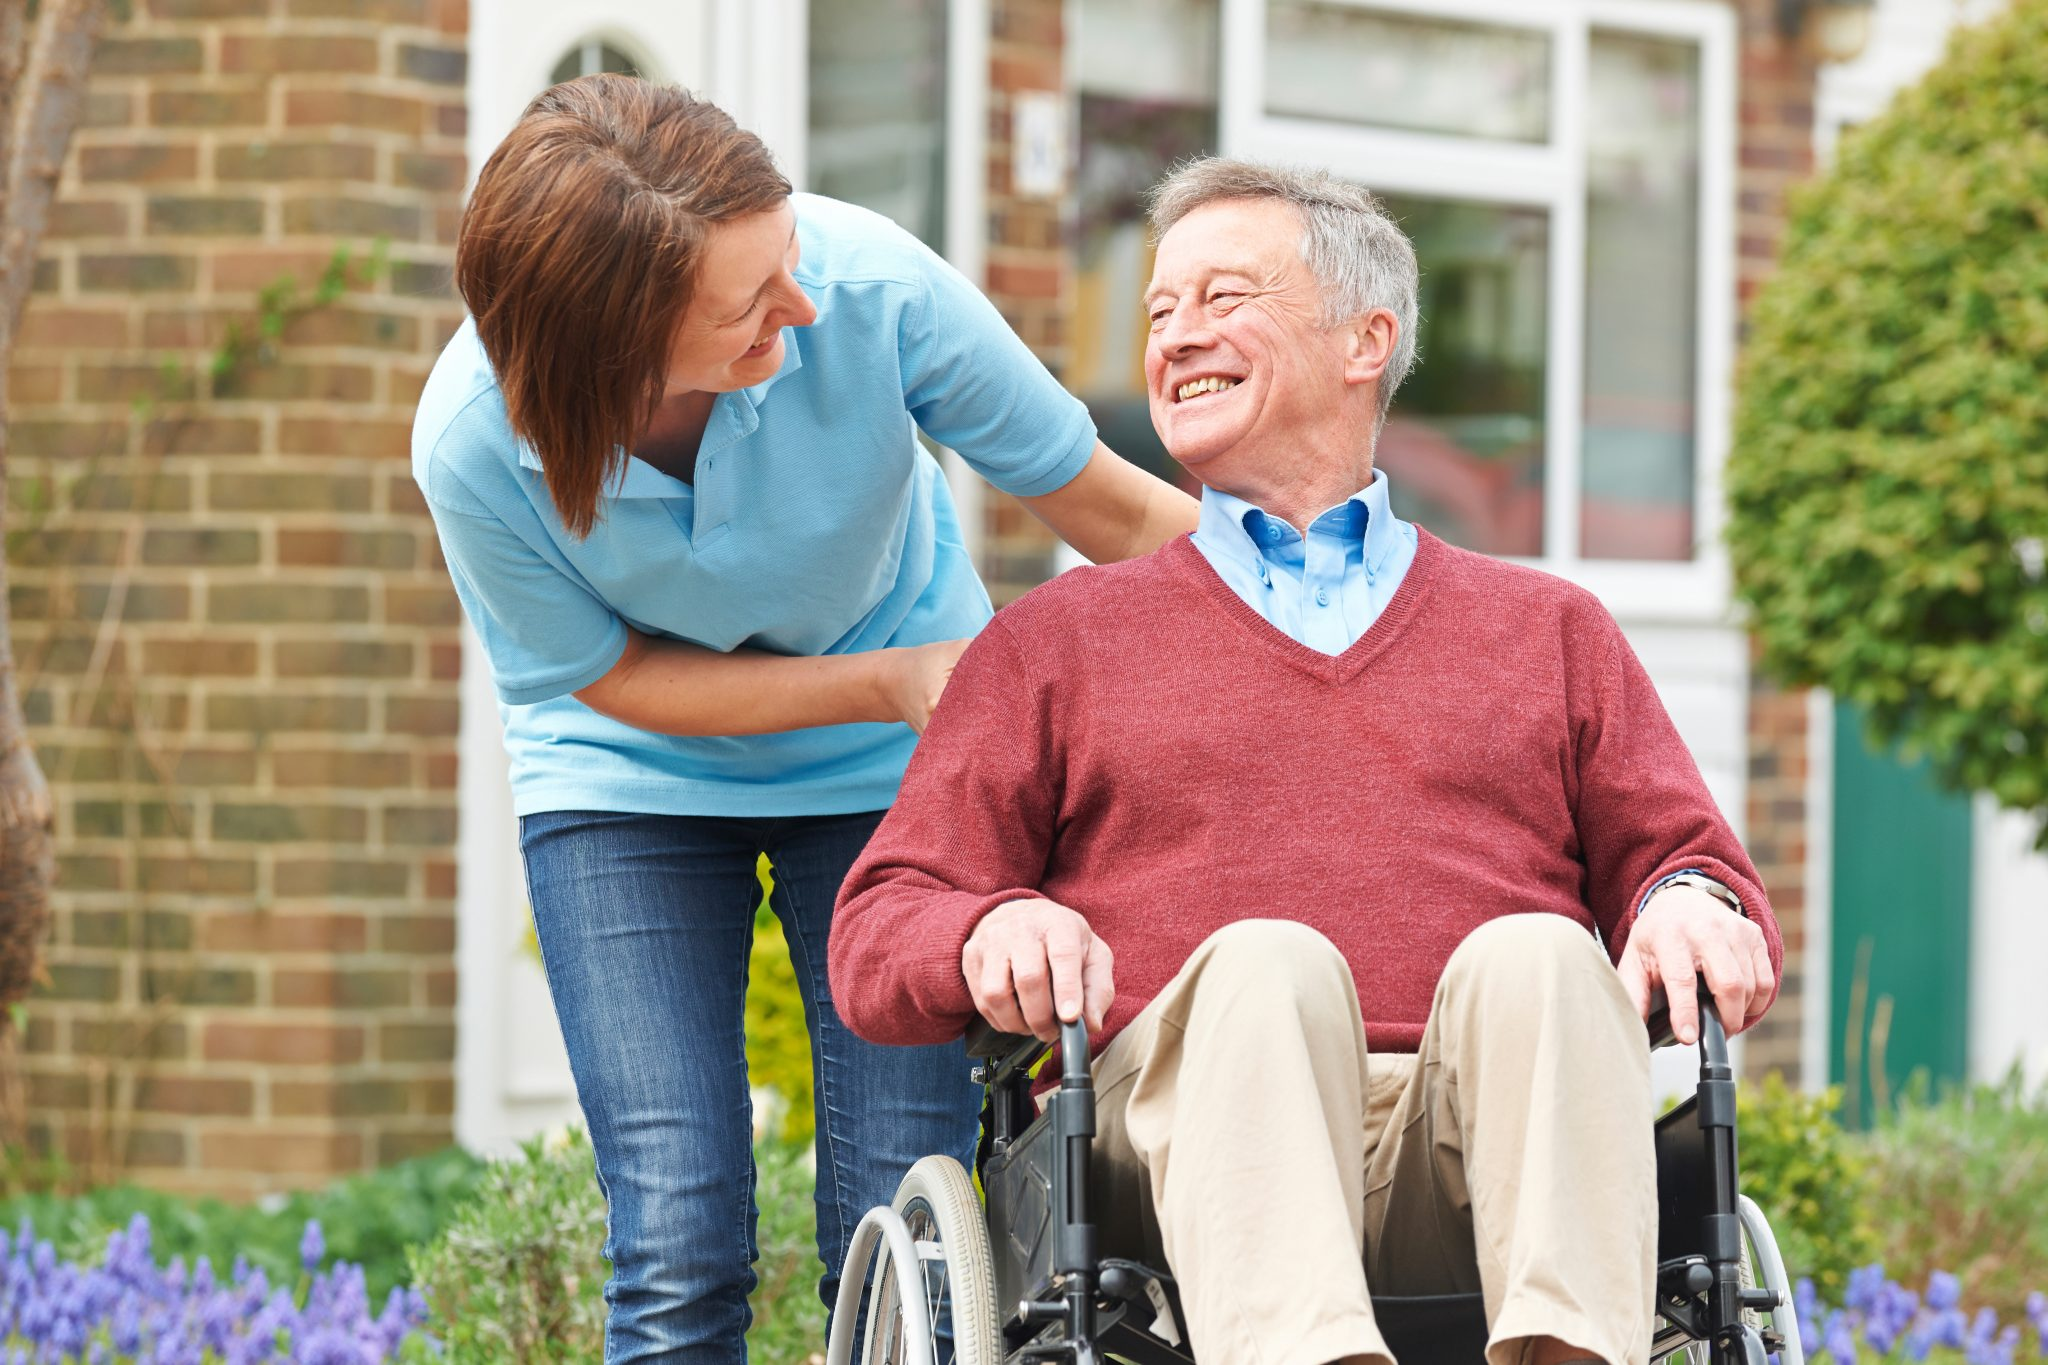 Disabled Home Care Services in Hannibal, MO